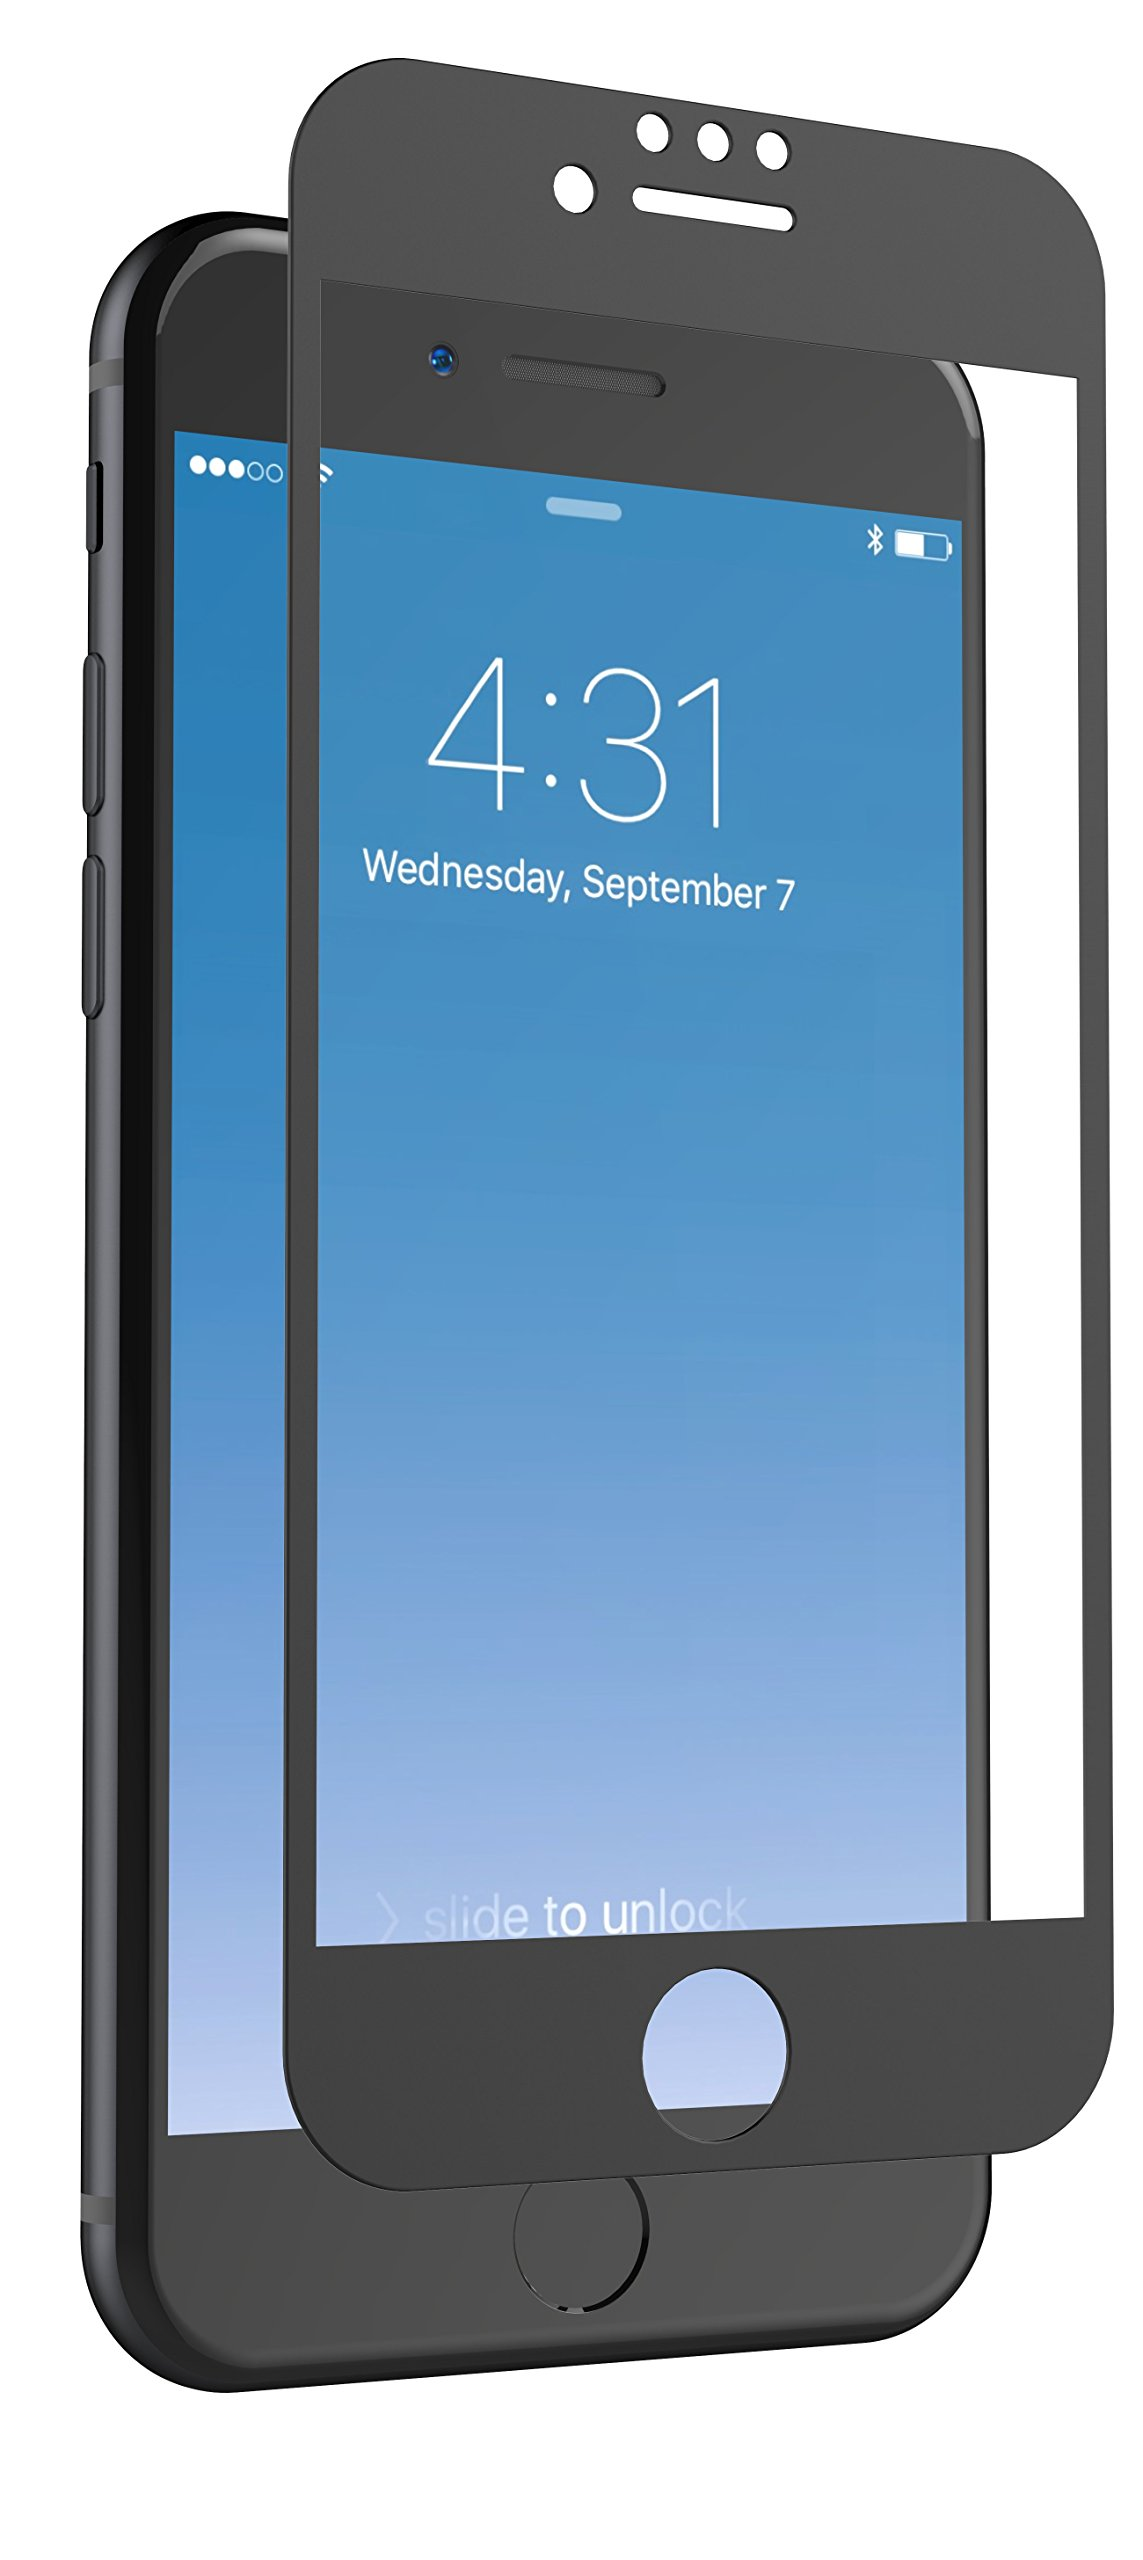 ZAGG InvisibleShield Glass + Luxe Screen Protector for iPhone 8, iPhone 7, iPhone 6s, iPhone 6 - Extreme Impact and Scratch Protection - Matte Black Finish